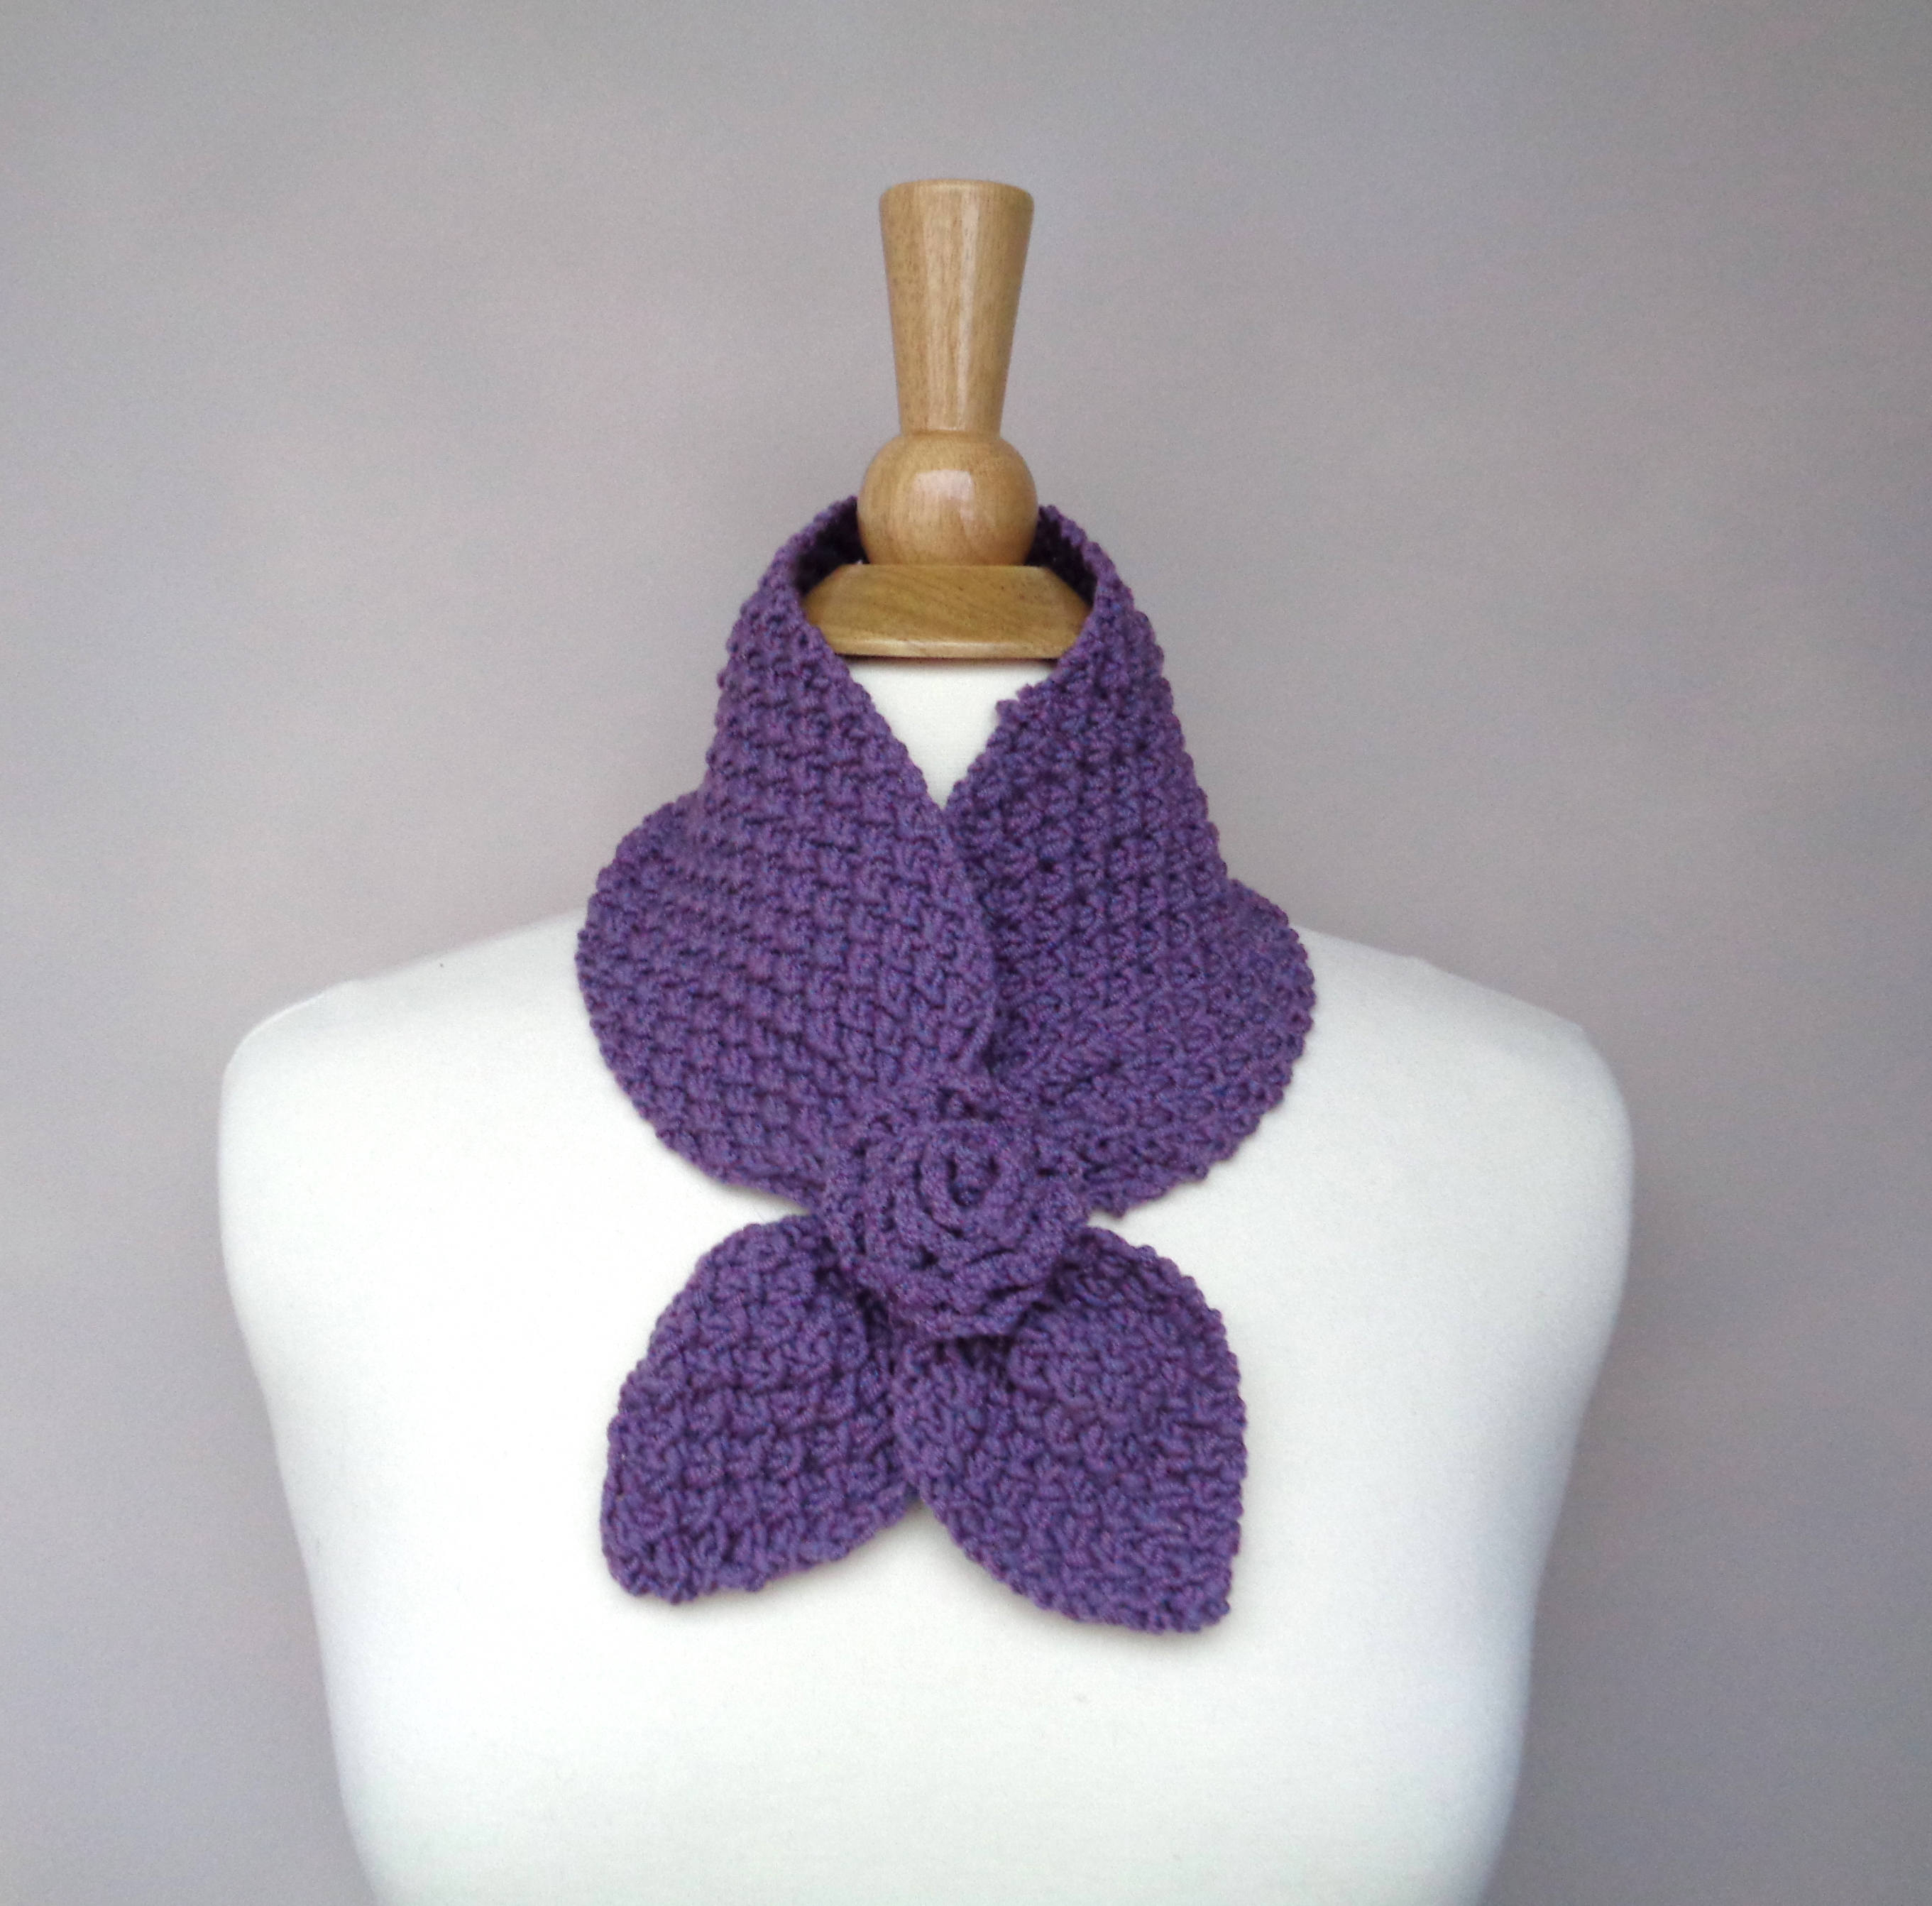 Ascot Scarf Knitting Pattern Ascot Neck Scarf With Rose Flower Pull Through Keyhole Scarf Plum Purple